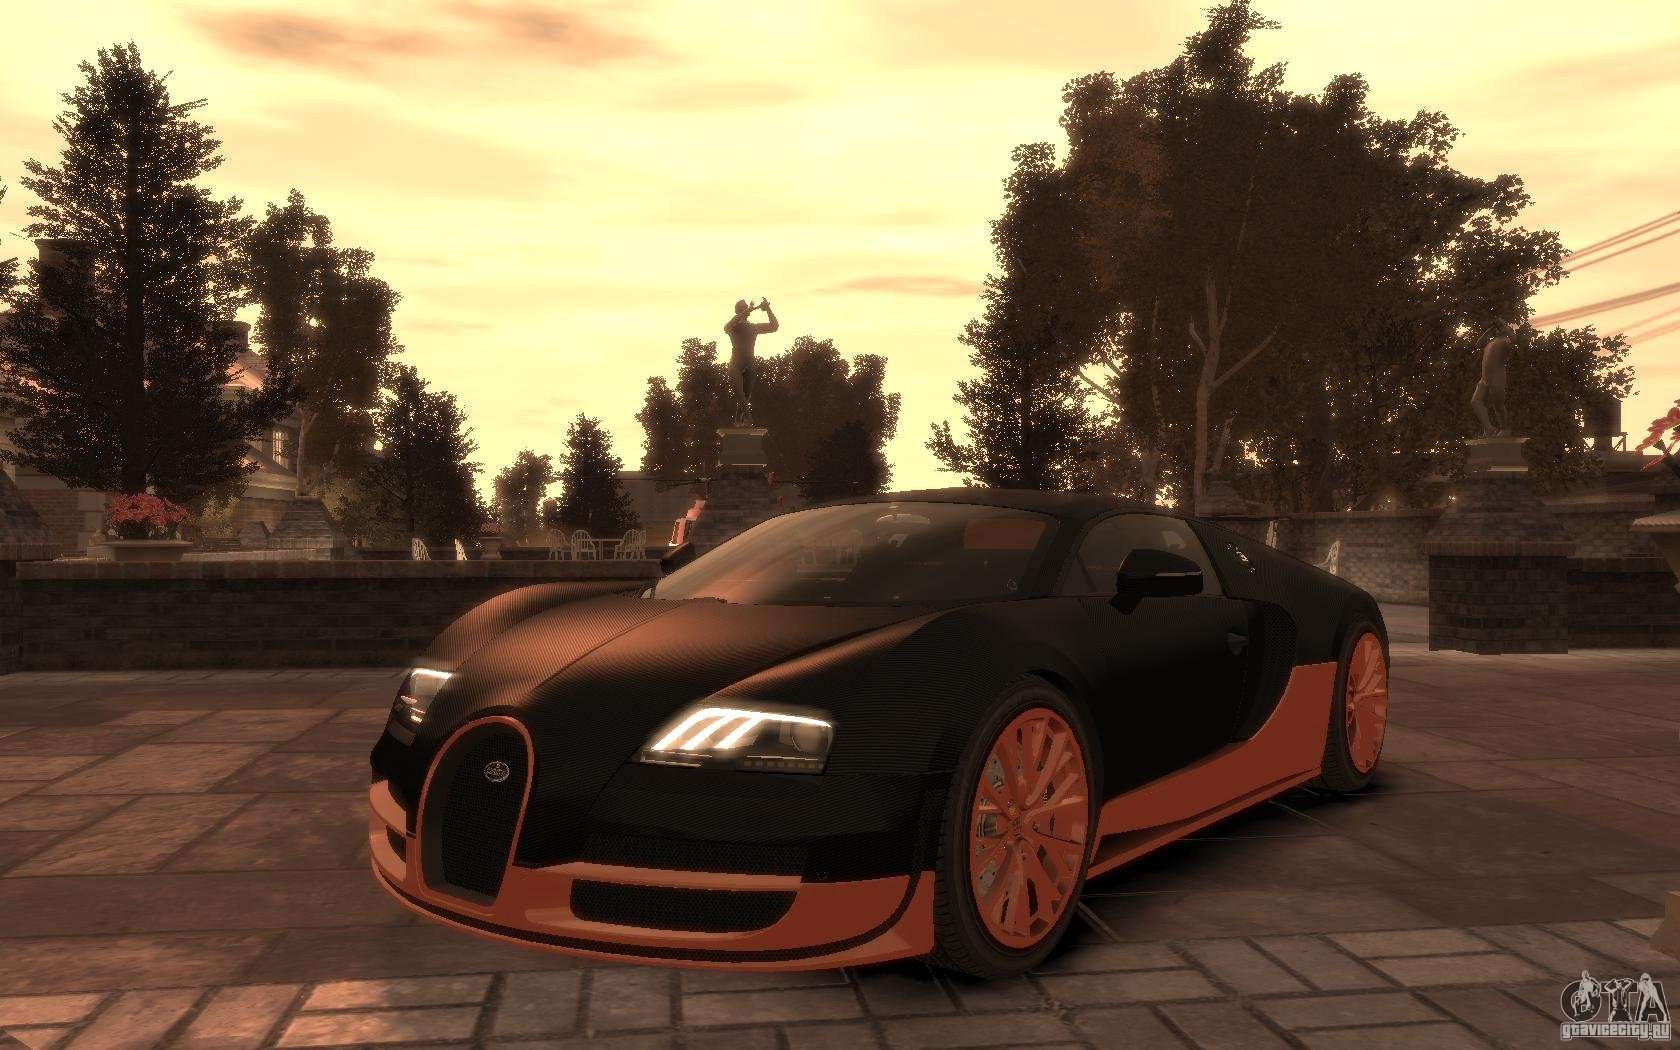 Entity Xf Location also Watch additionally Gta Online Car Locations Guide also 1366772324 besides Custom Yellow Black Bugatti Veyron Spotted In Beverly Hills. on gta 5 adder location